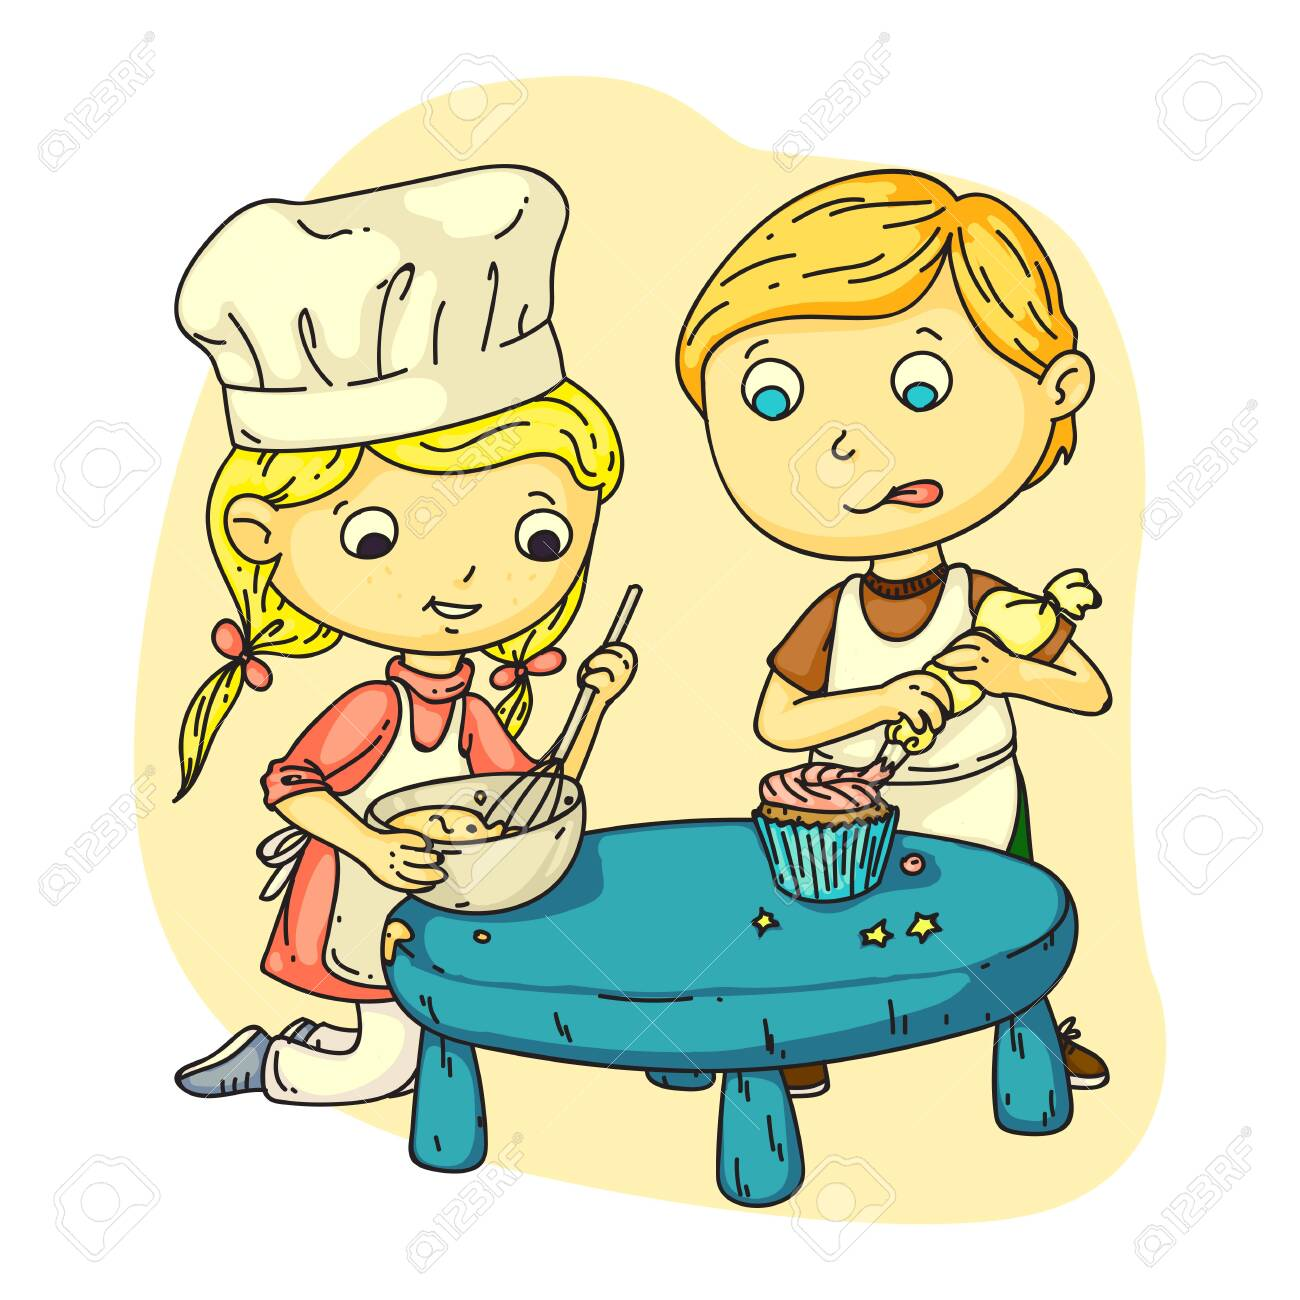 145853629-happy-girl-and-boy-cooking-together-flat-cartoon.jpg